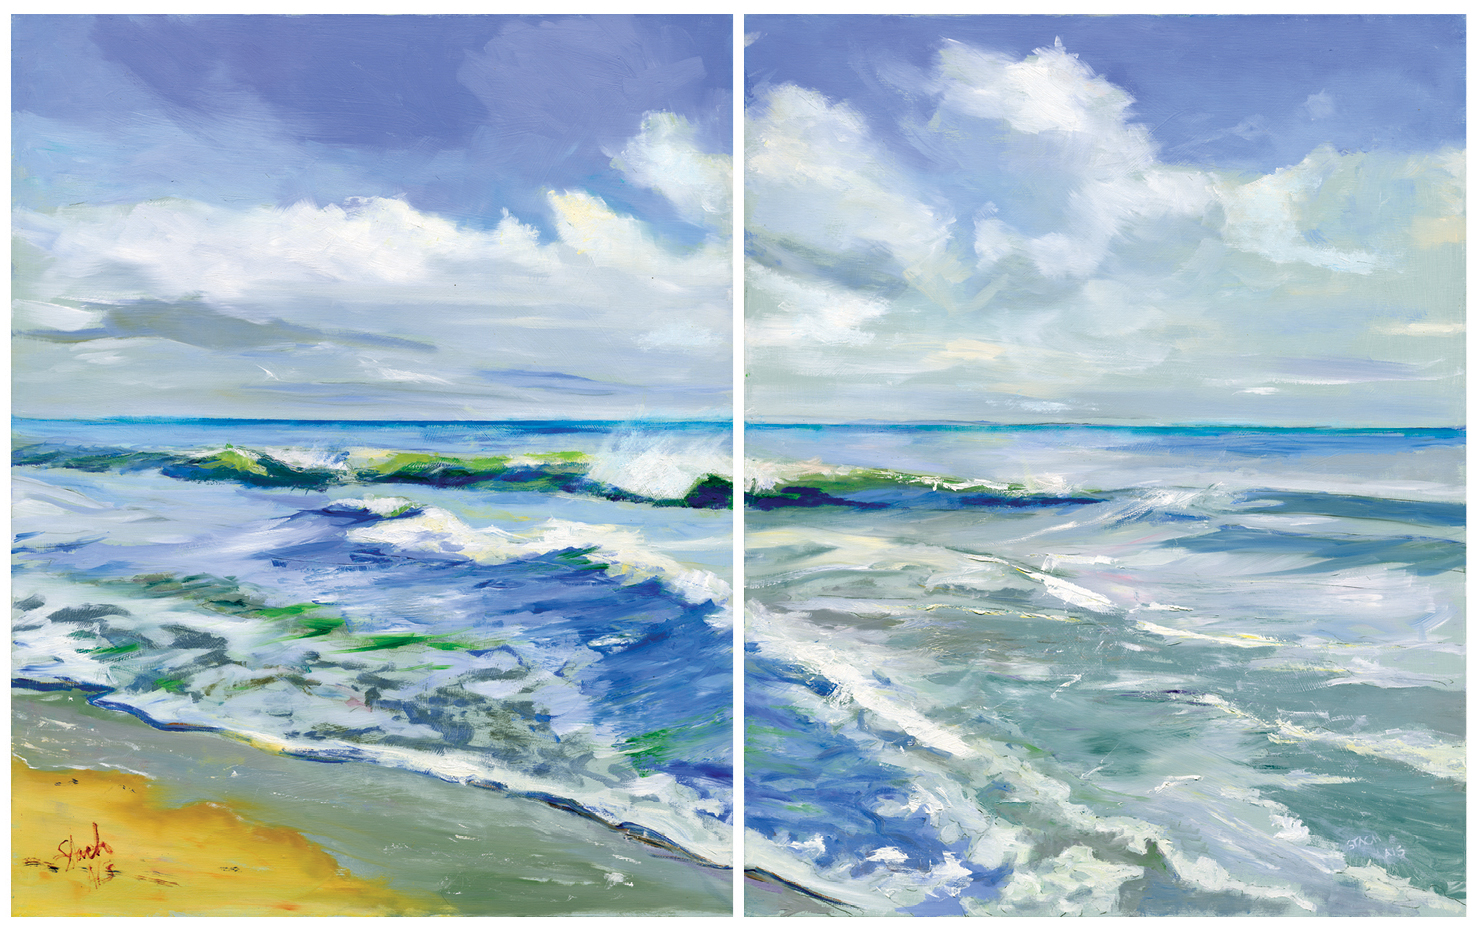 Morning Waves, diptych